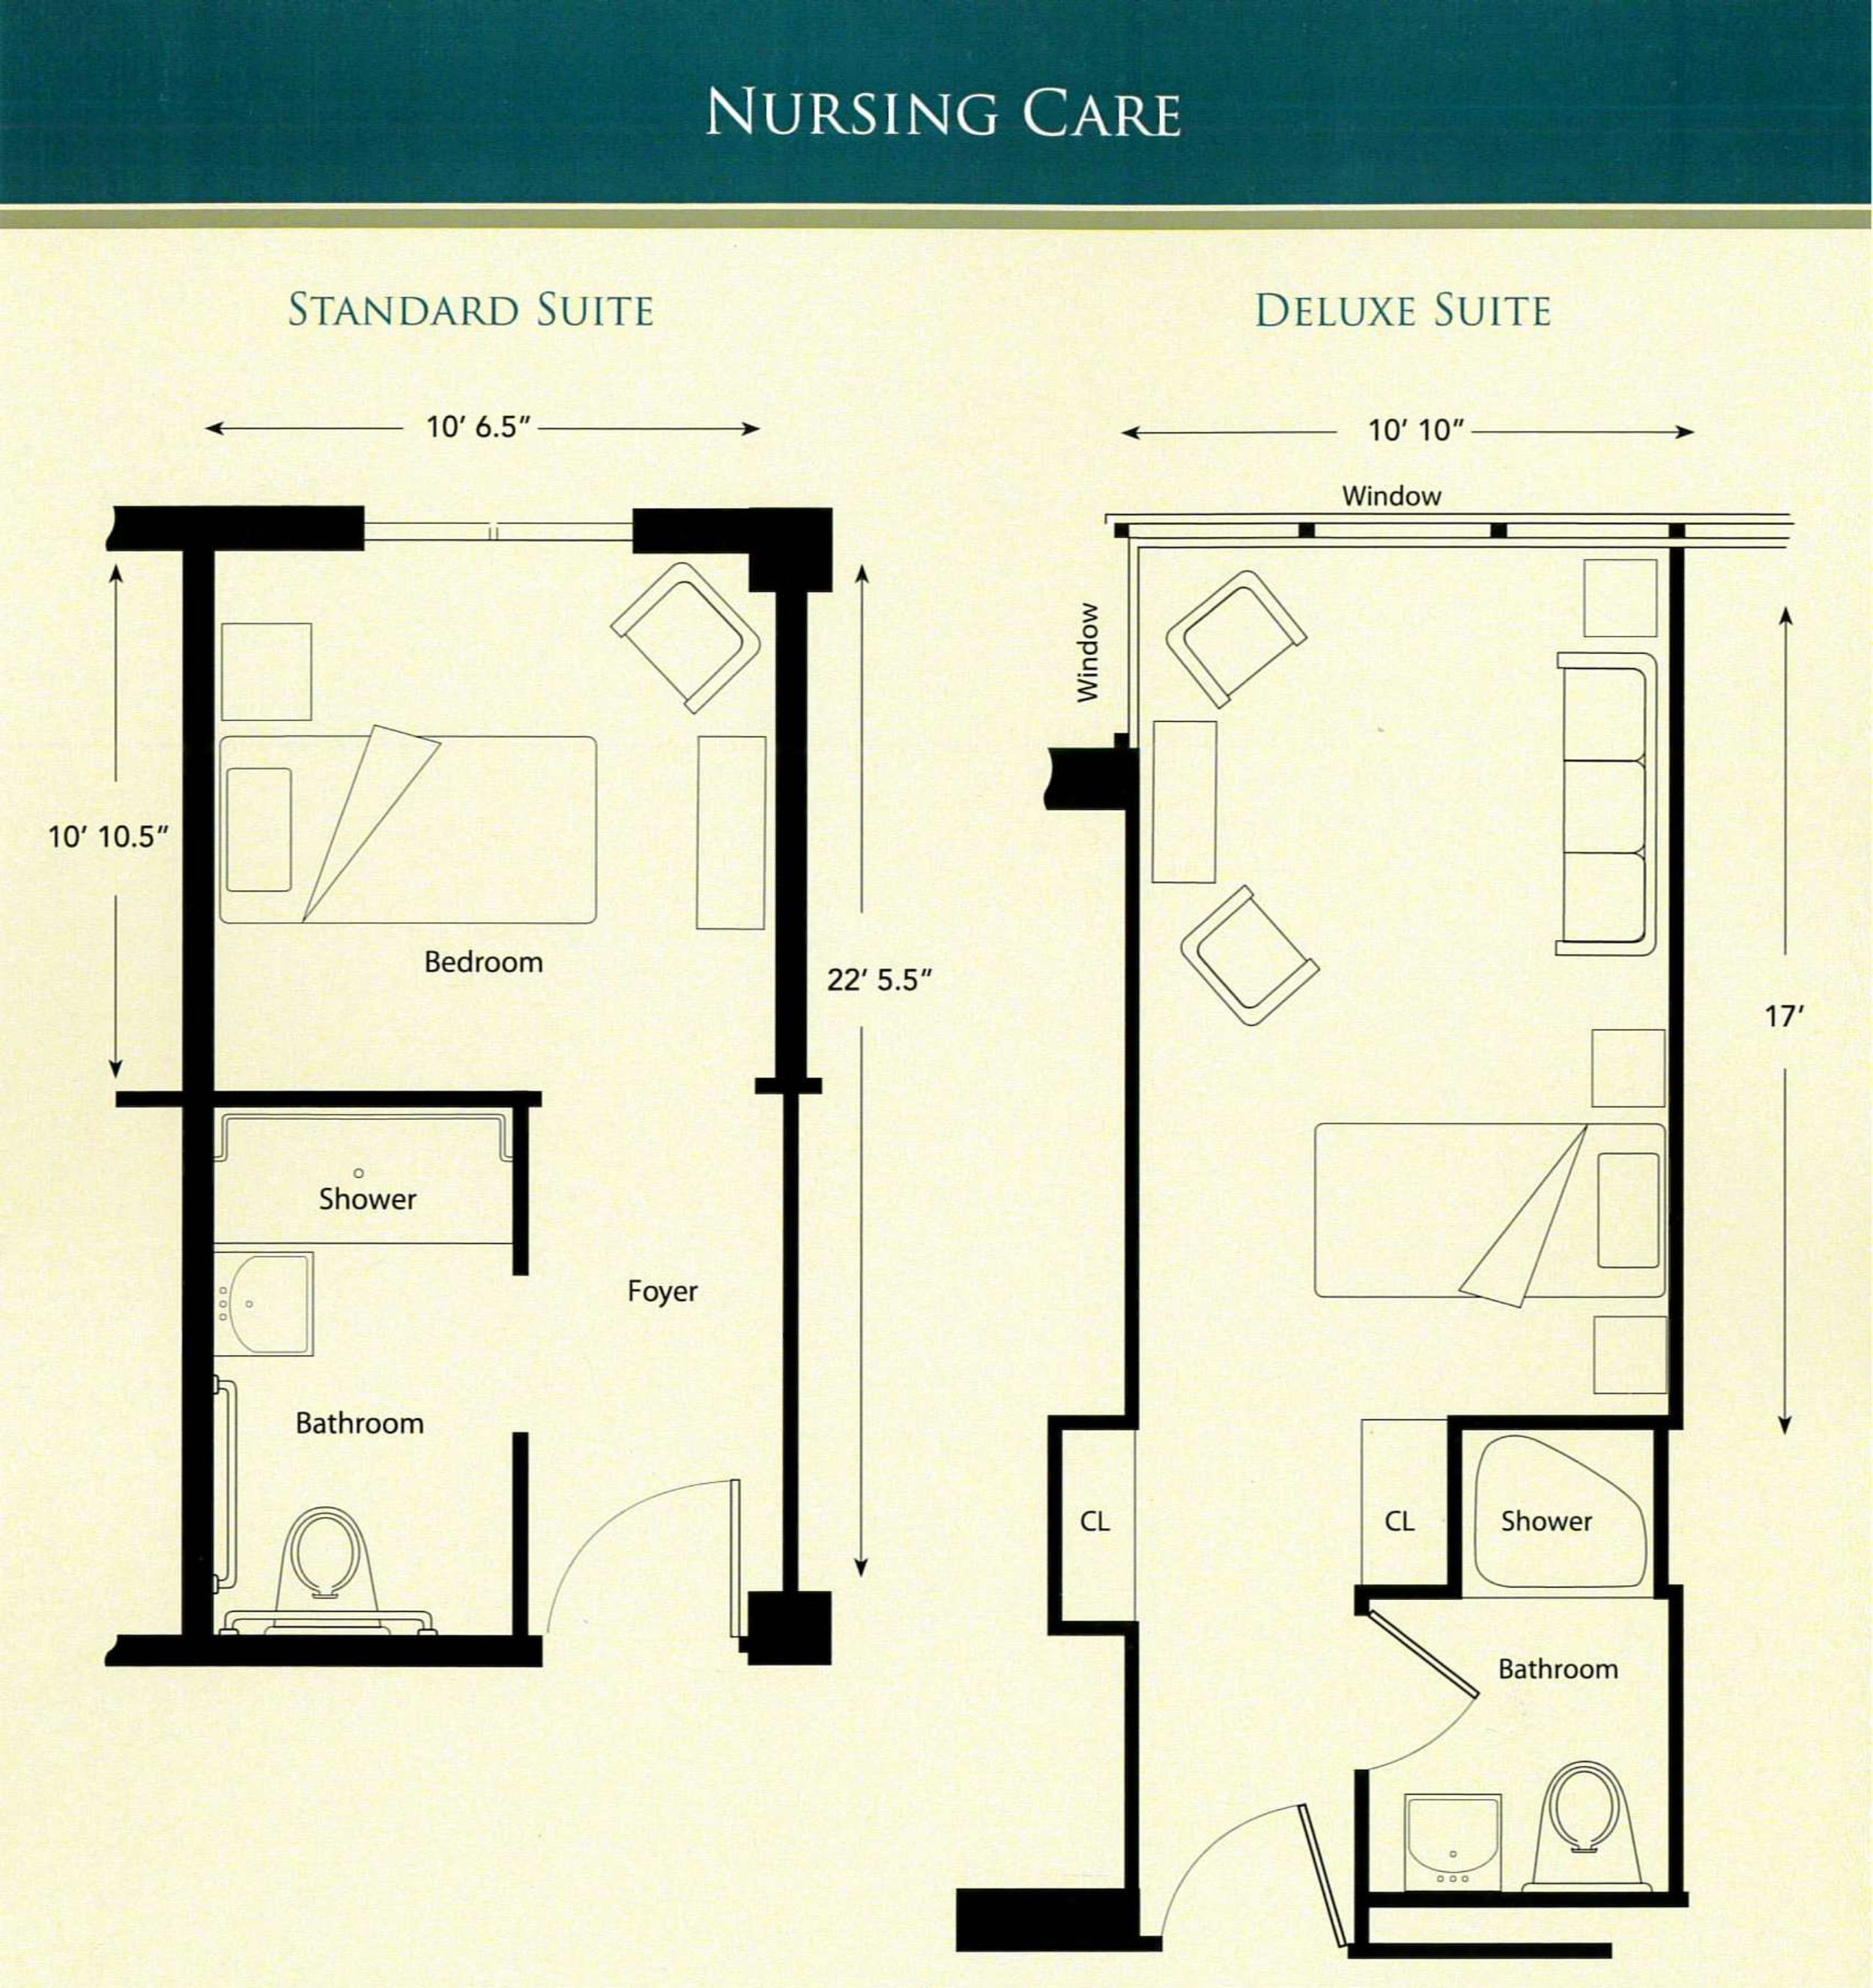 Nursing Care Standard and Deluxe Suites